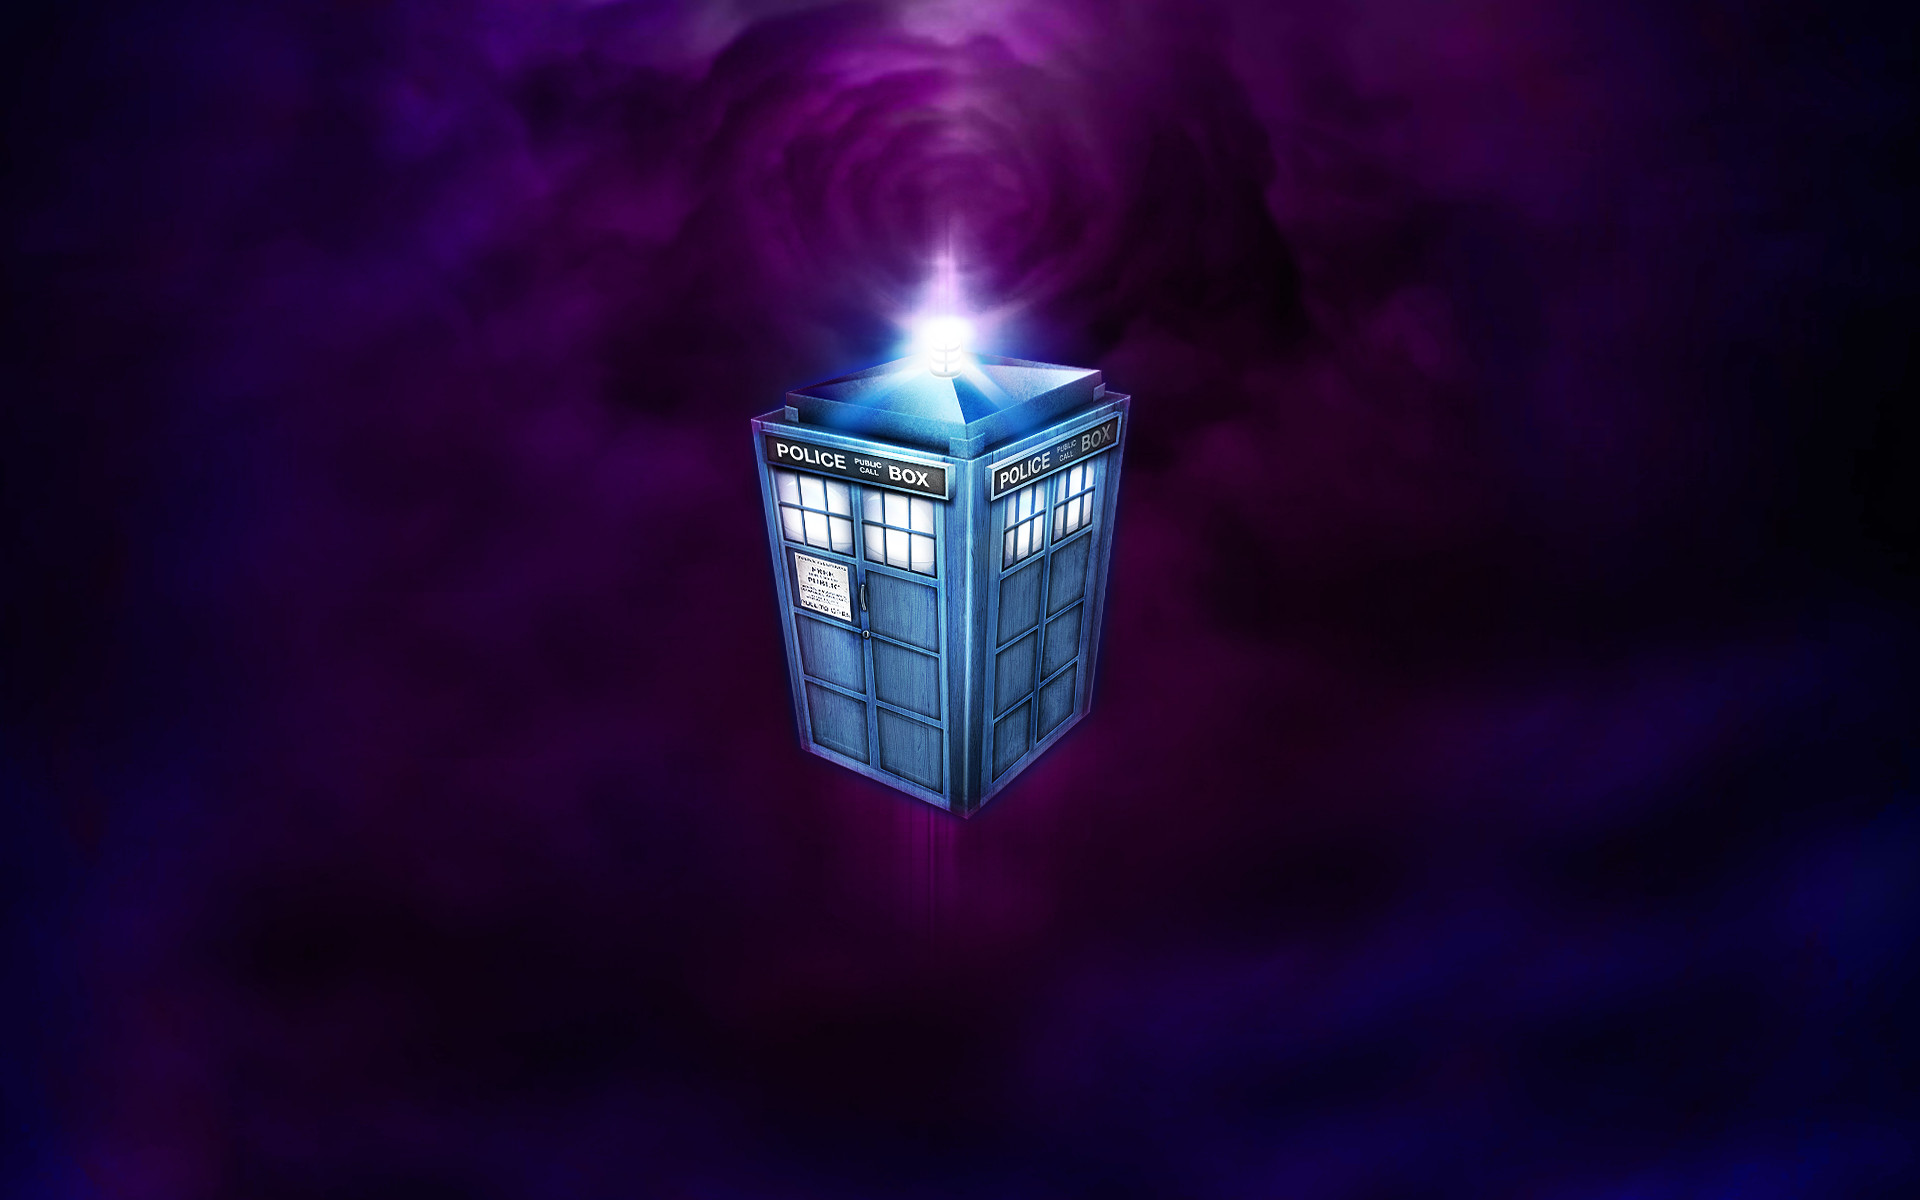 Wallpapers ⇒ TV ⇒ Doctor Who Wallpaper